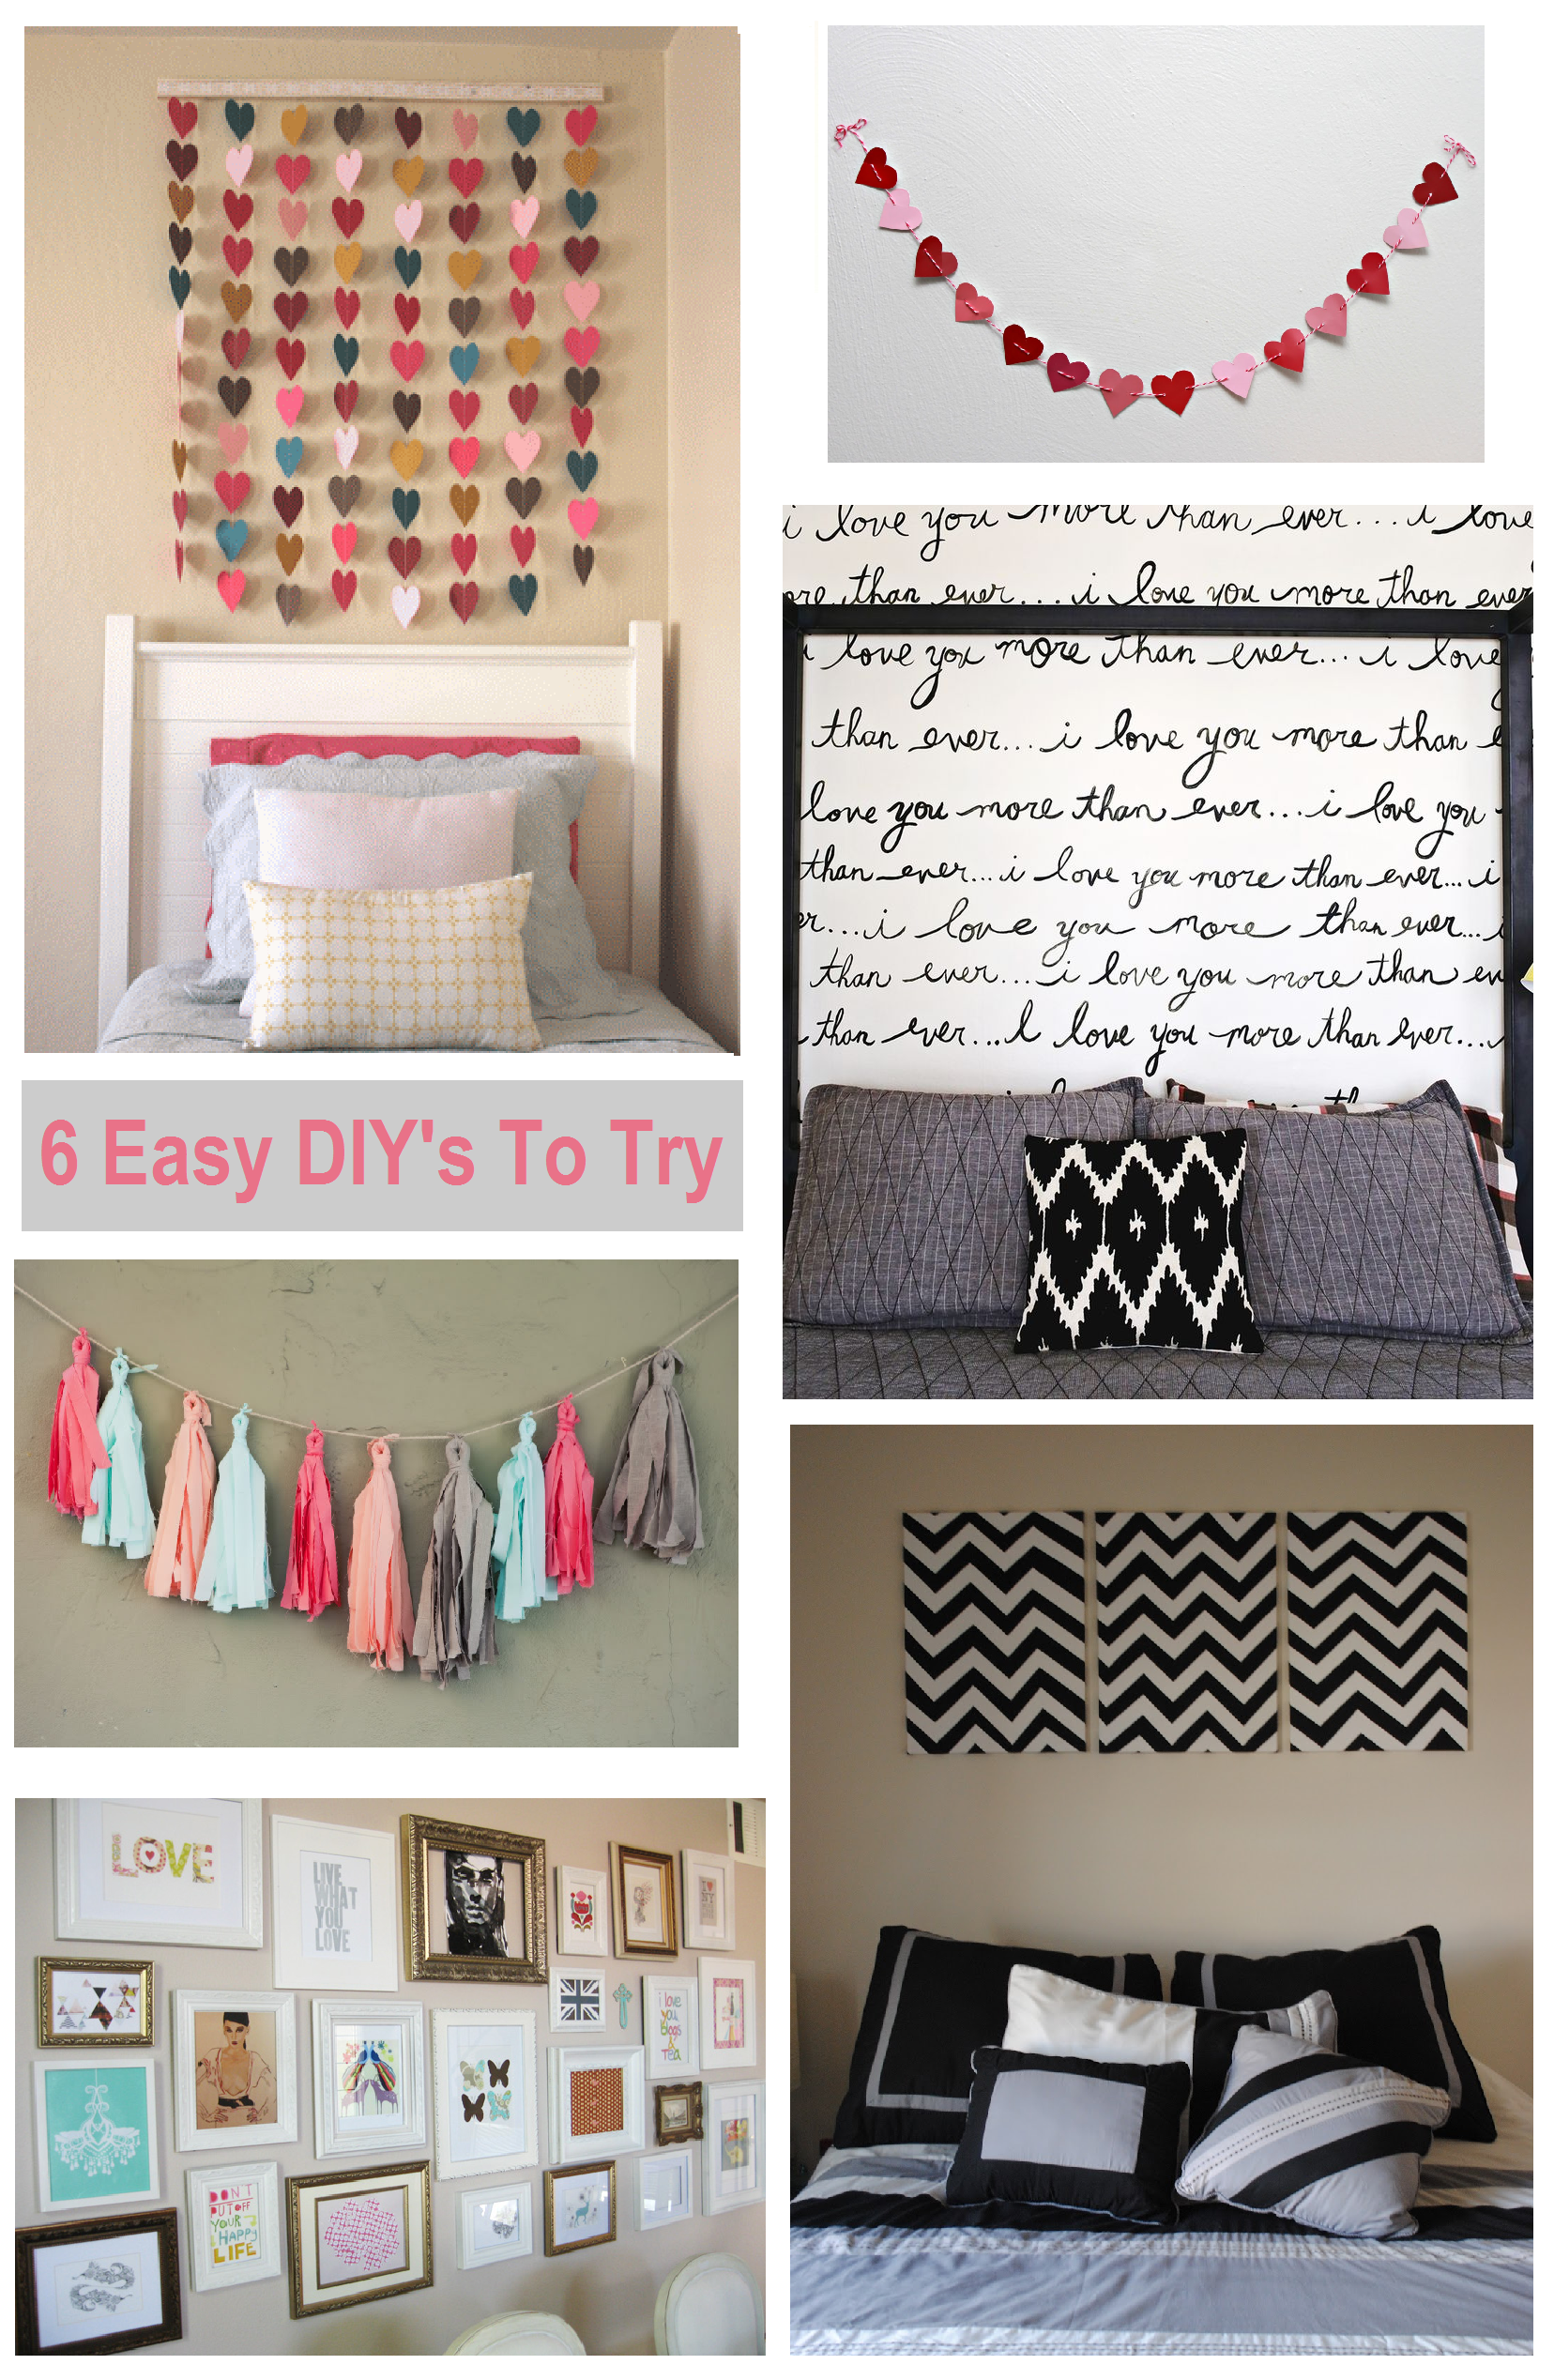 6 Diy Bedroom Wall Art Ideas Shopgirl